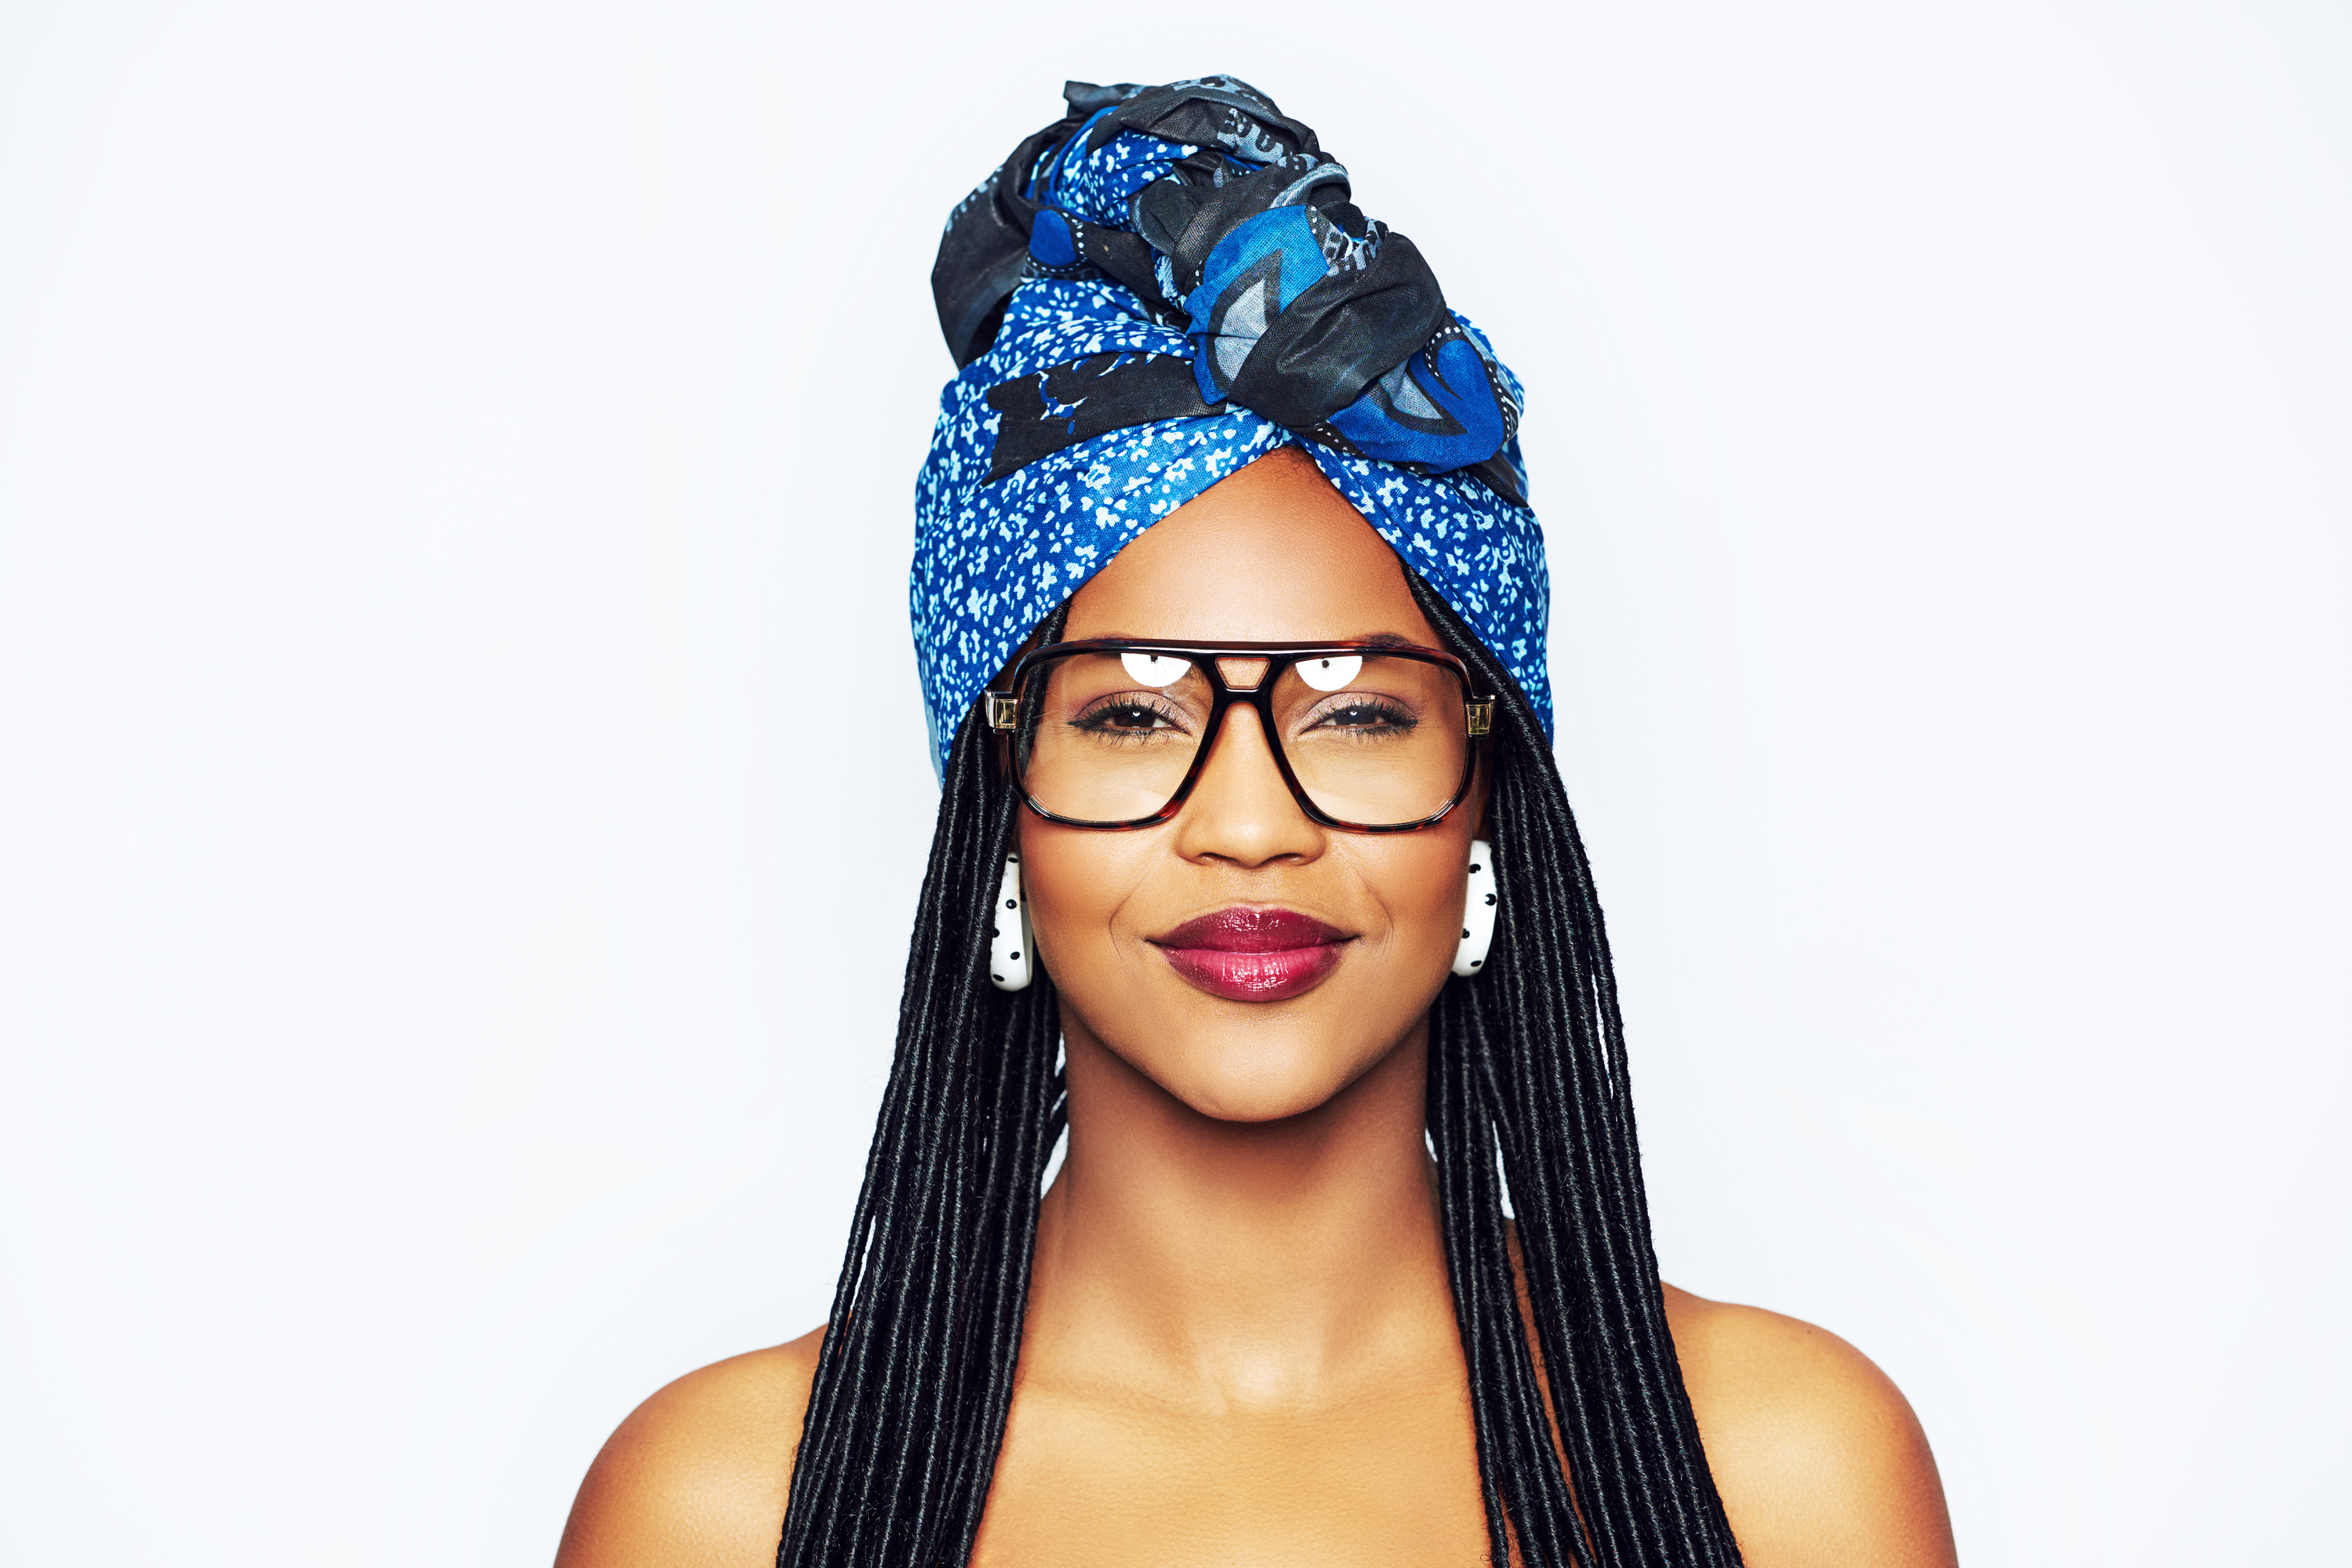 There is nothing worse than dealing with your hair while you're traveling. These travel hairstyles will help keep your hair under control. Try using a head scarf or getting braid done.